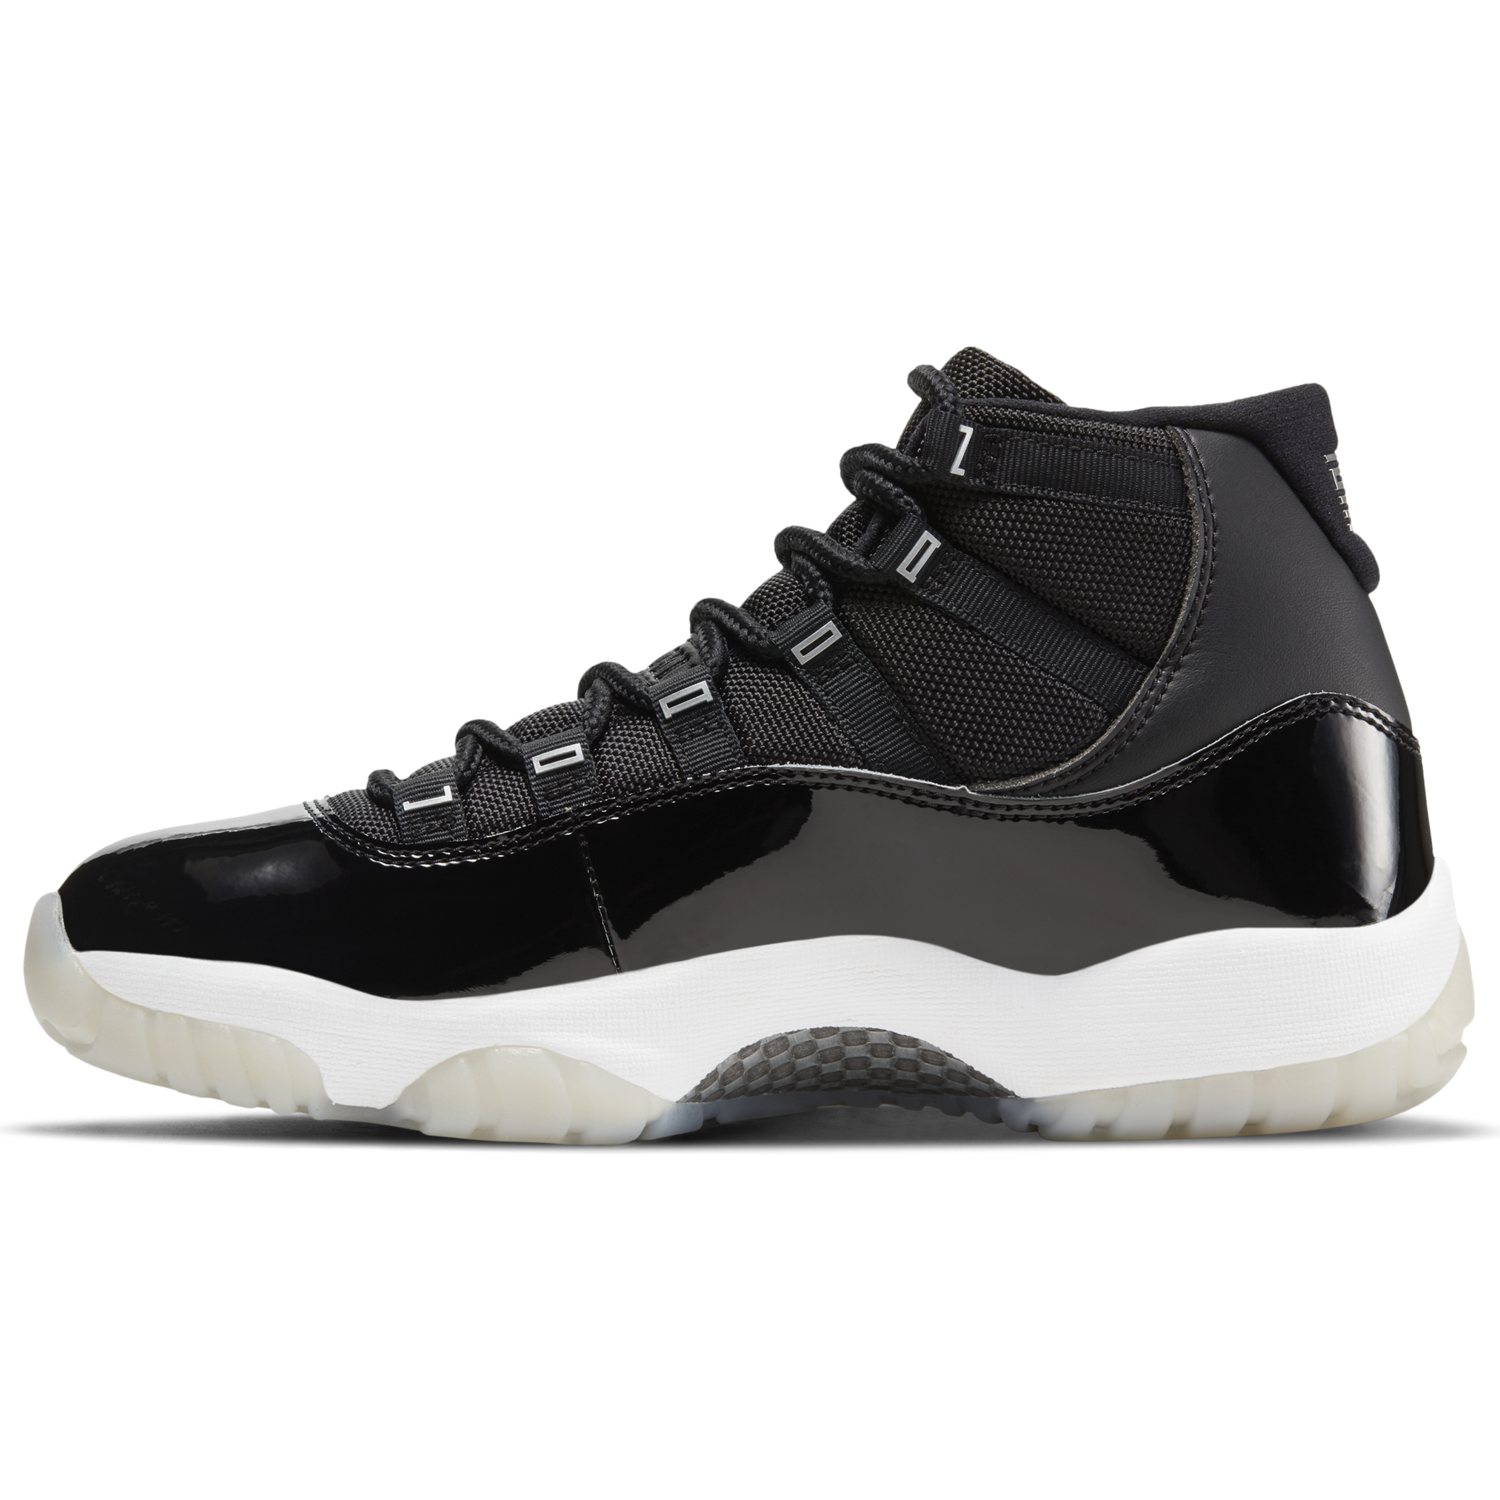 AIR JORDAN W'S FOOTWEAR W JORDAN 11 RETRO - BLACK/MULTI COLOR